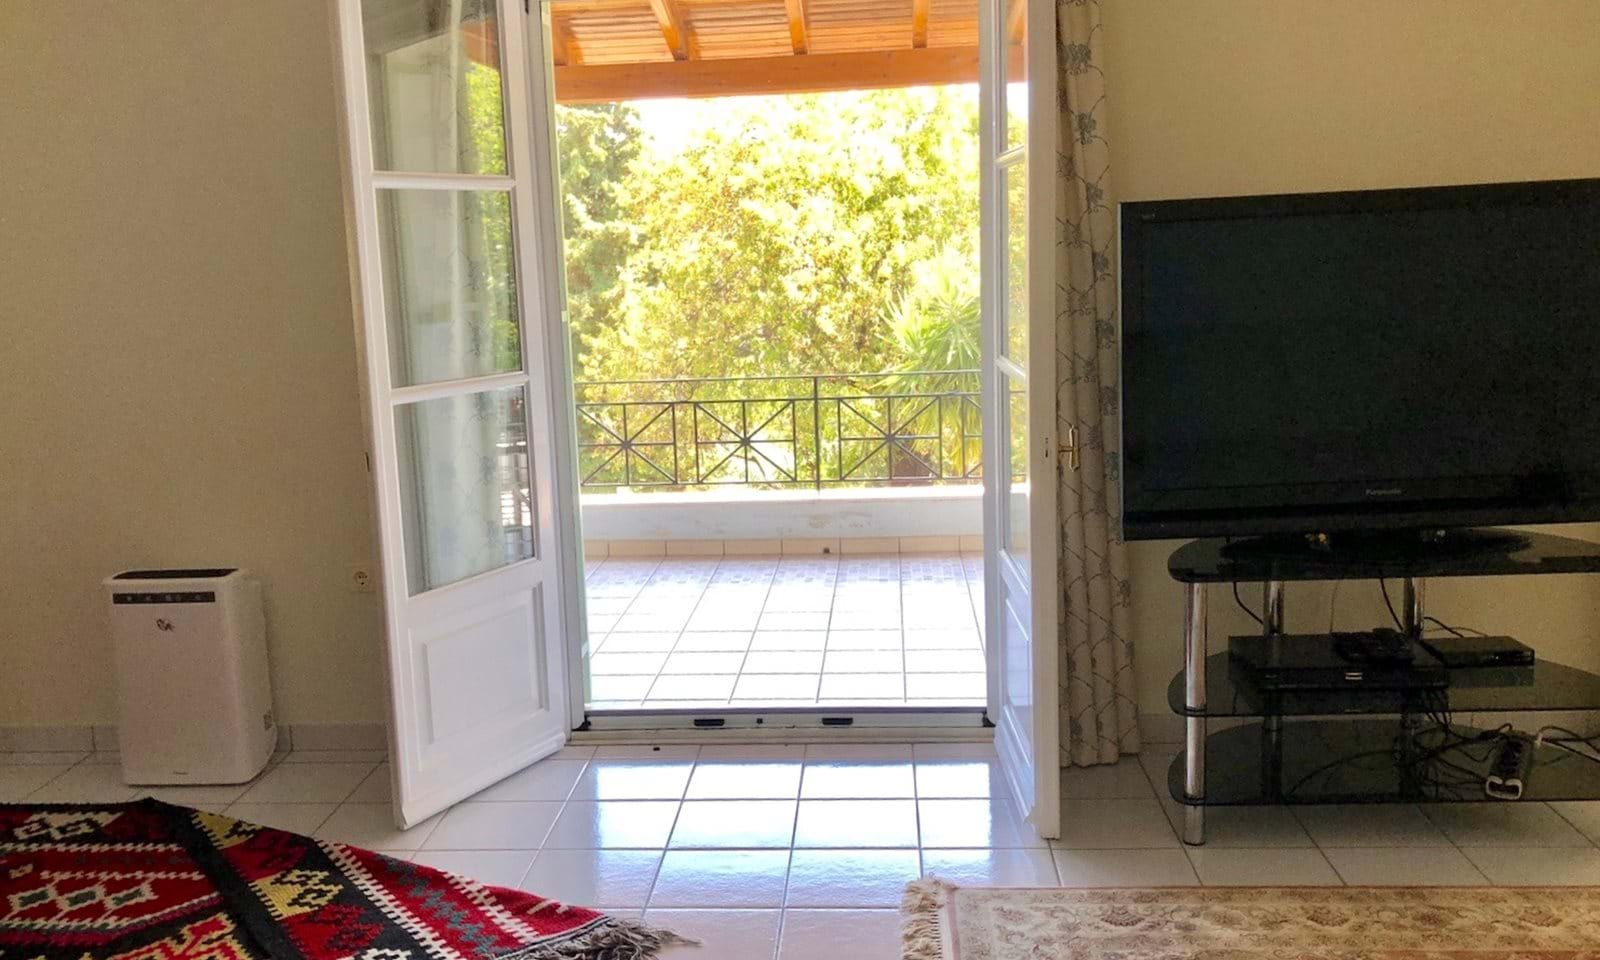 french doors from living room to balcony